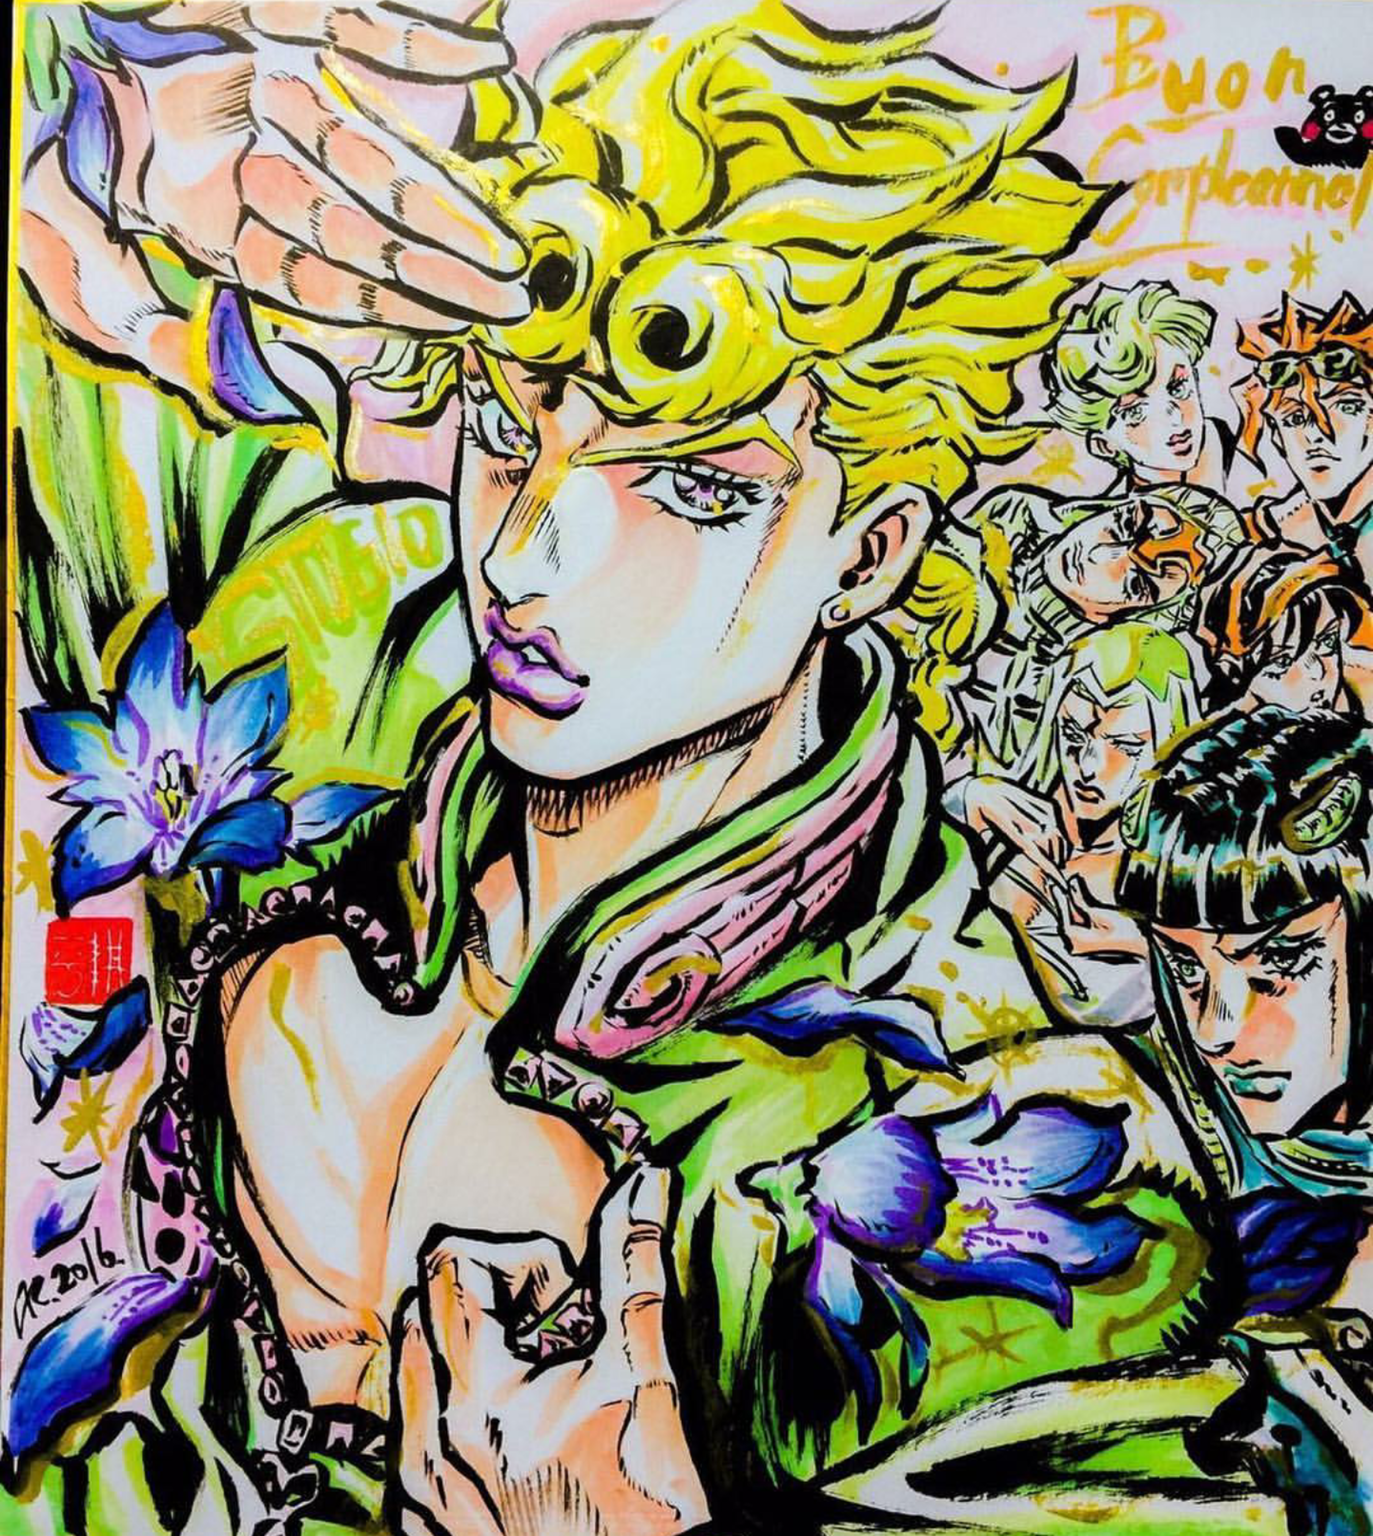 Part 5 Gang Drawn By DP Director